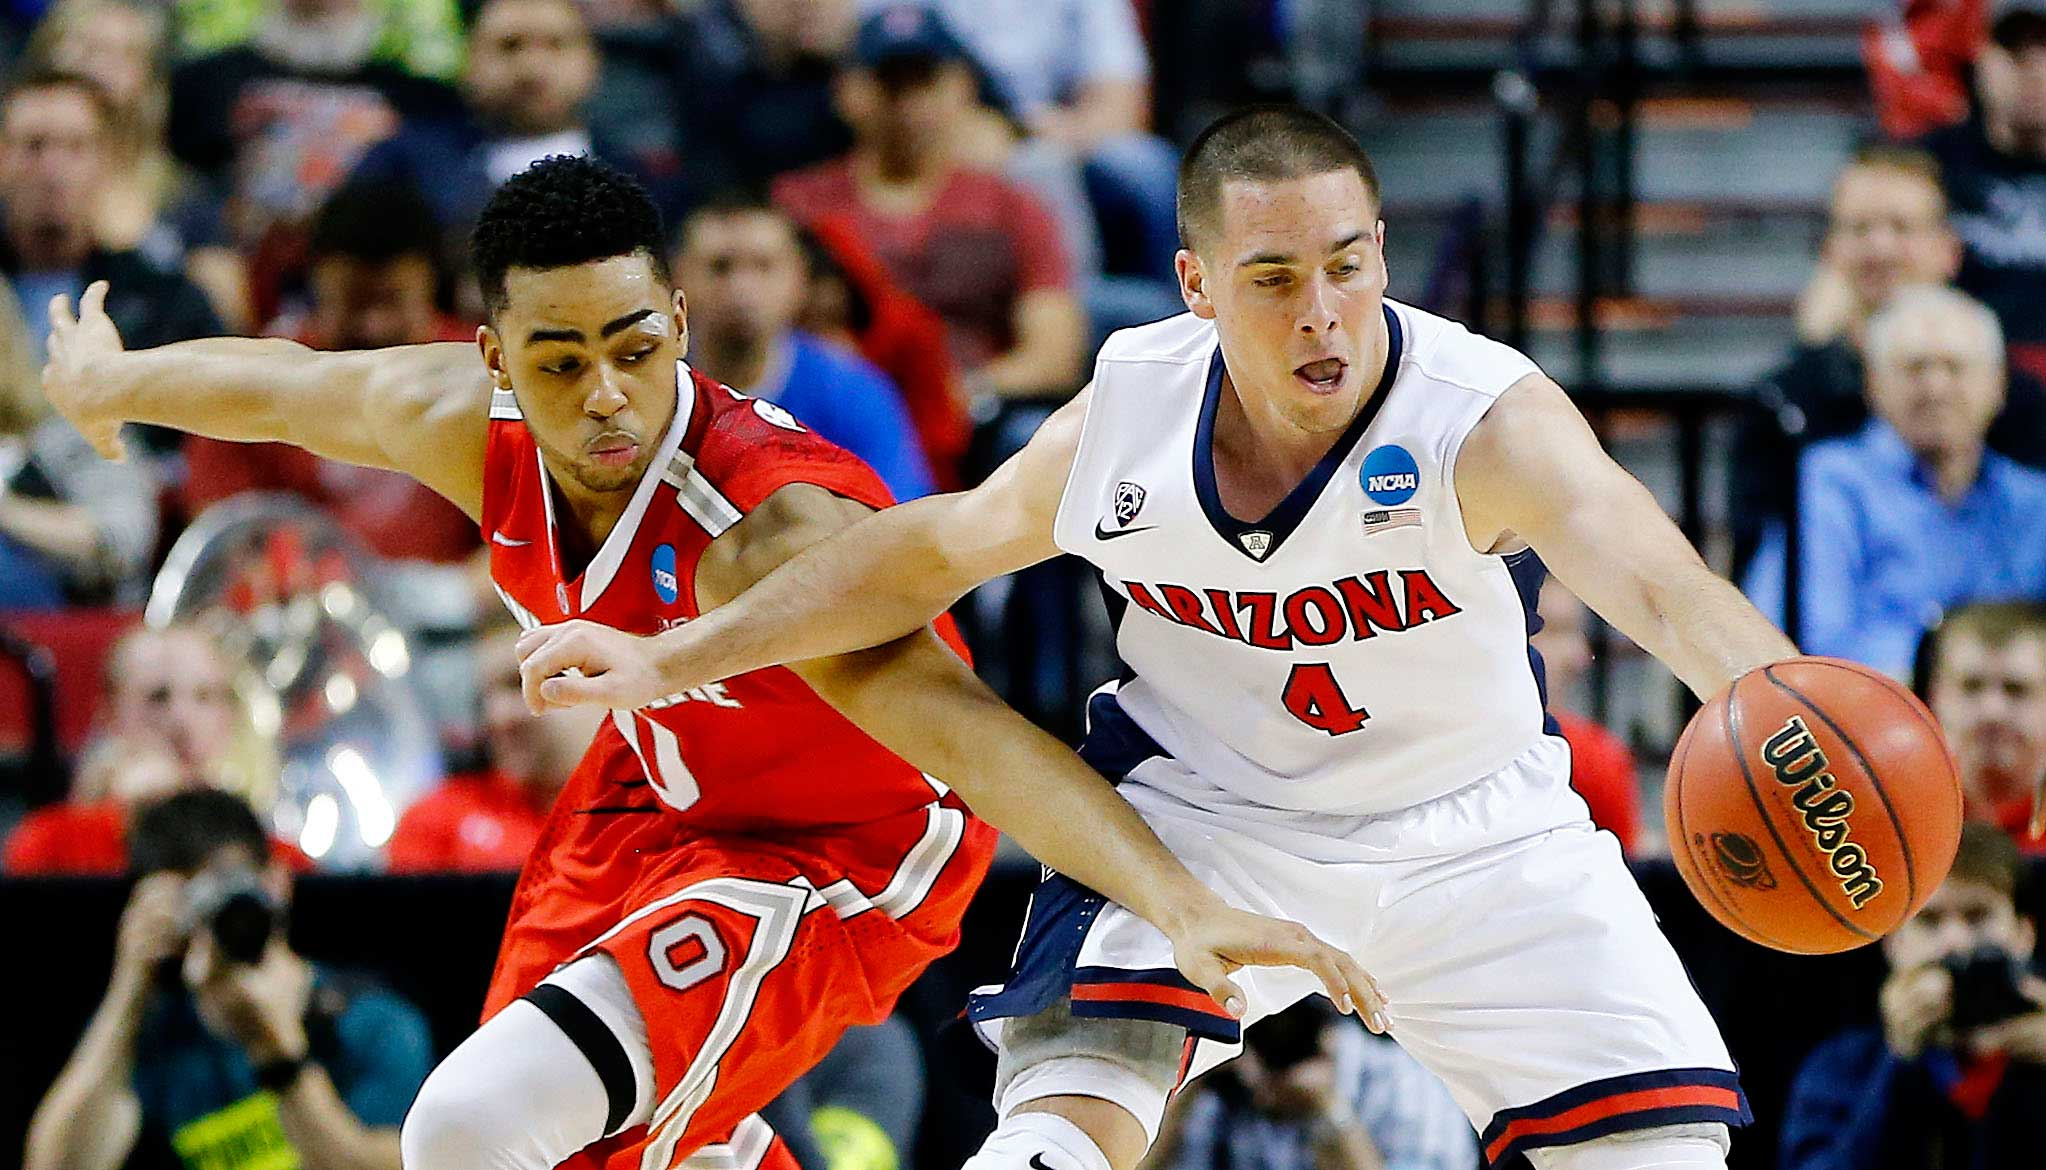 T.J. McConnell of the Arizona Wildcats and D'Angelo Russell of the Ohio State Buckeyes vie for a loose ball in the second half during the third round of the 2015 NCAA Men's Basketball Tournament at Moda Center in Portland, Ore. on March 21, 2015.